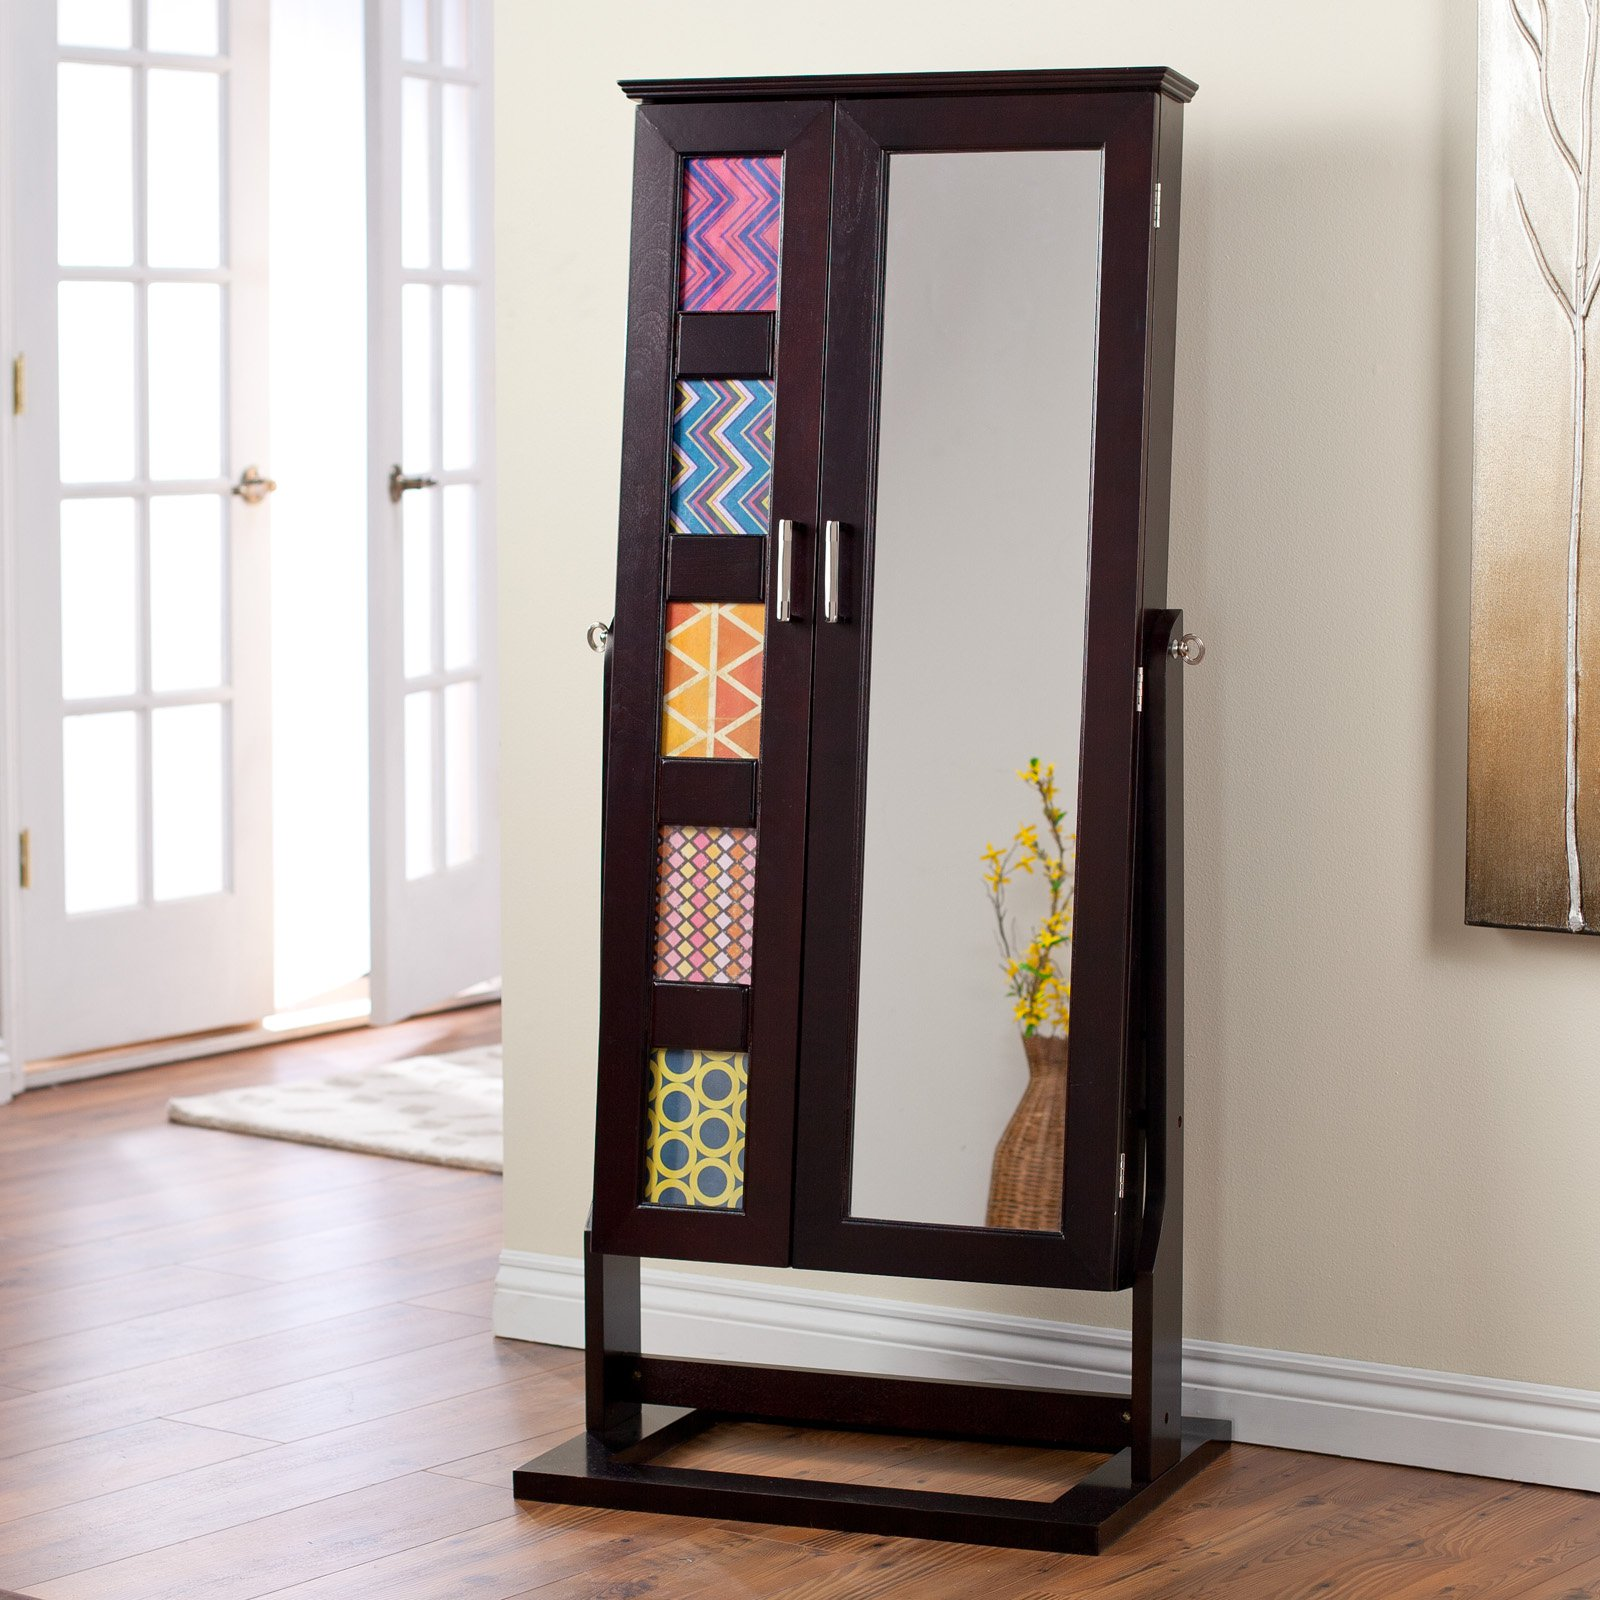 Belham Living Photo Frames Jewelry Armoire Cheval Mirror - Espresso